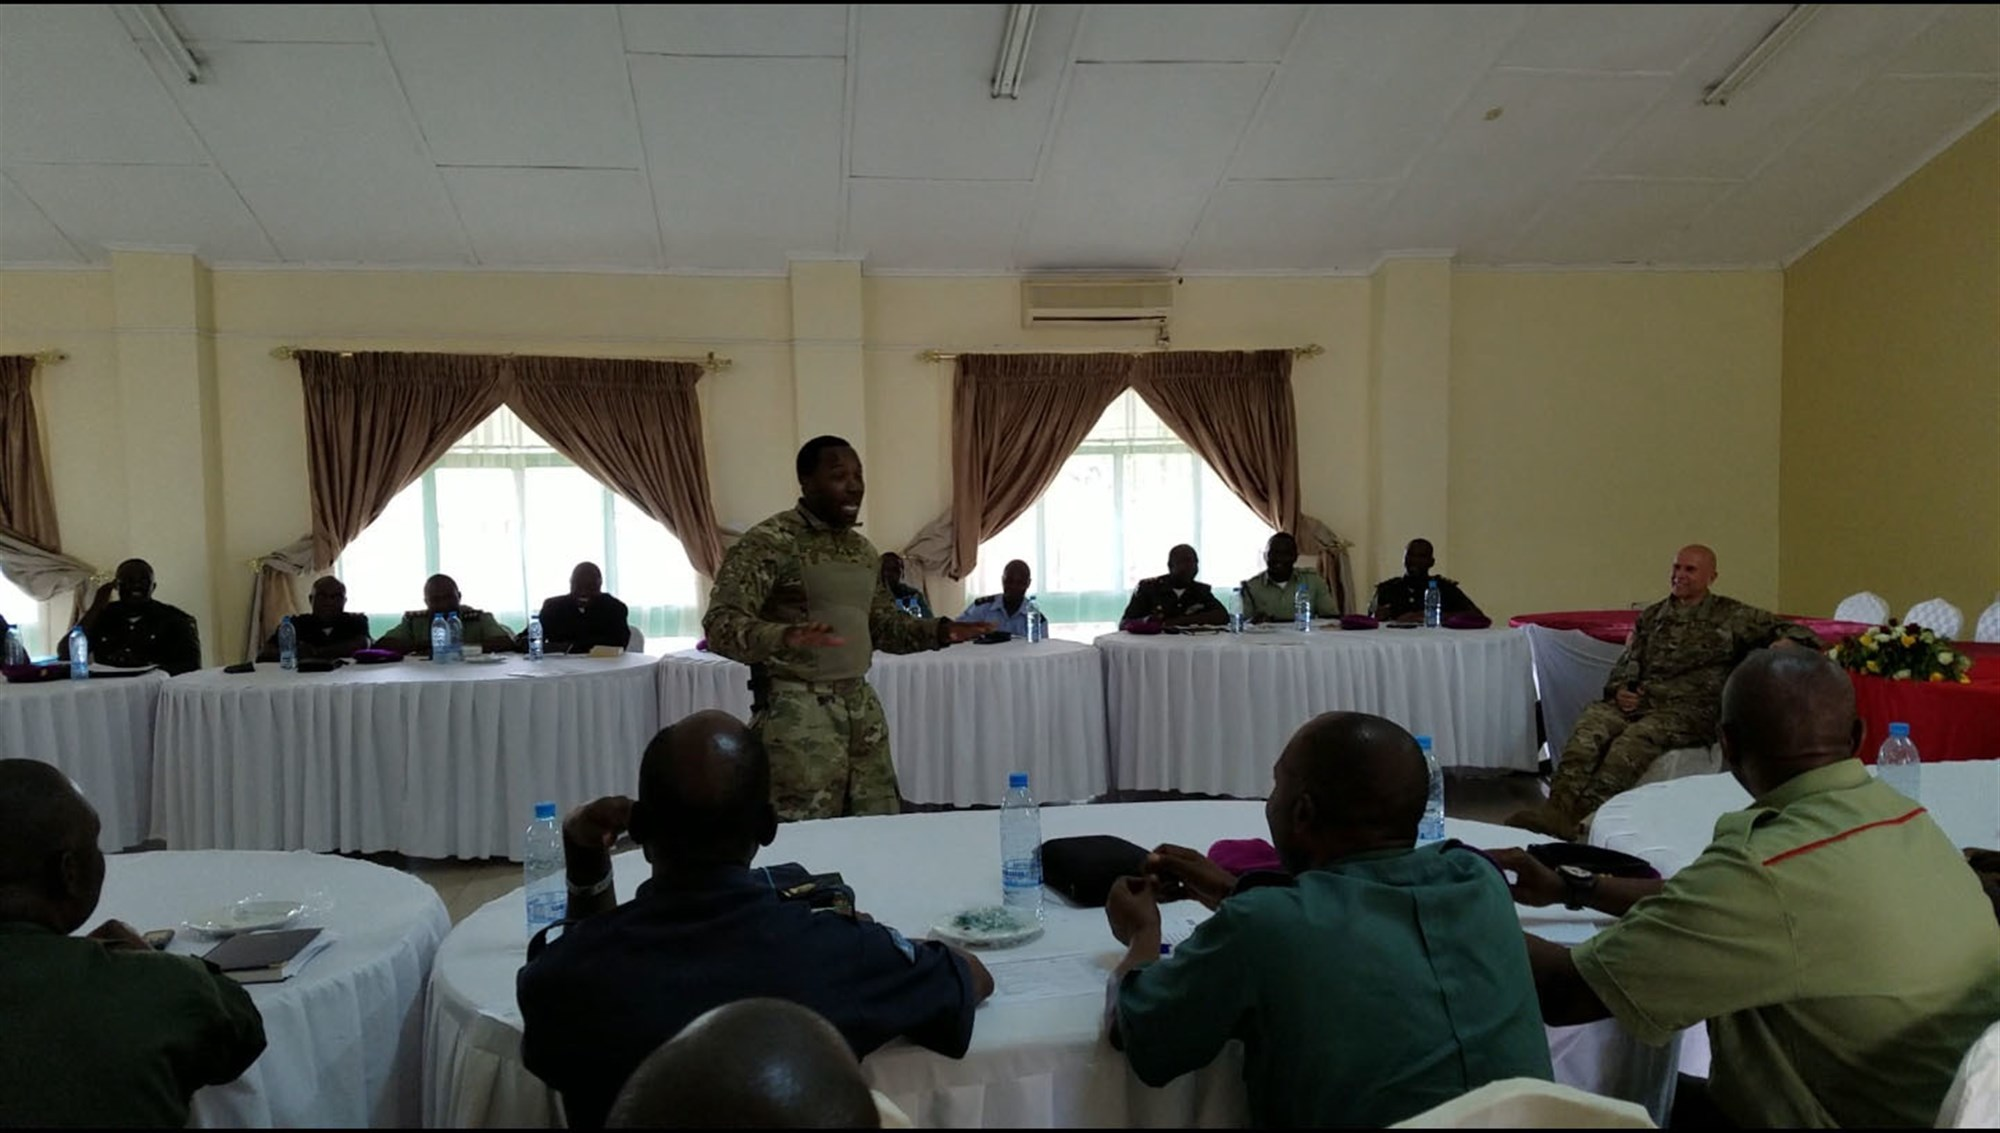 Sgt. 1st Class George L. Butler, the U.S. Army Africa senior religious affairs non-commissioned officer in charge, speaks during a seminar attended by USARAF and Zambian Defense Force chaplains in Lusaka, Zambia, Jan. 23-25, 2018. During the seminar, the chaplains discussed peacekeeping operations deployment cycle support and the emotional and spiritual stresses of combat on the African continent. (U.S. Army photo/Chaplain (Col.) David Lile)